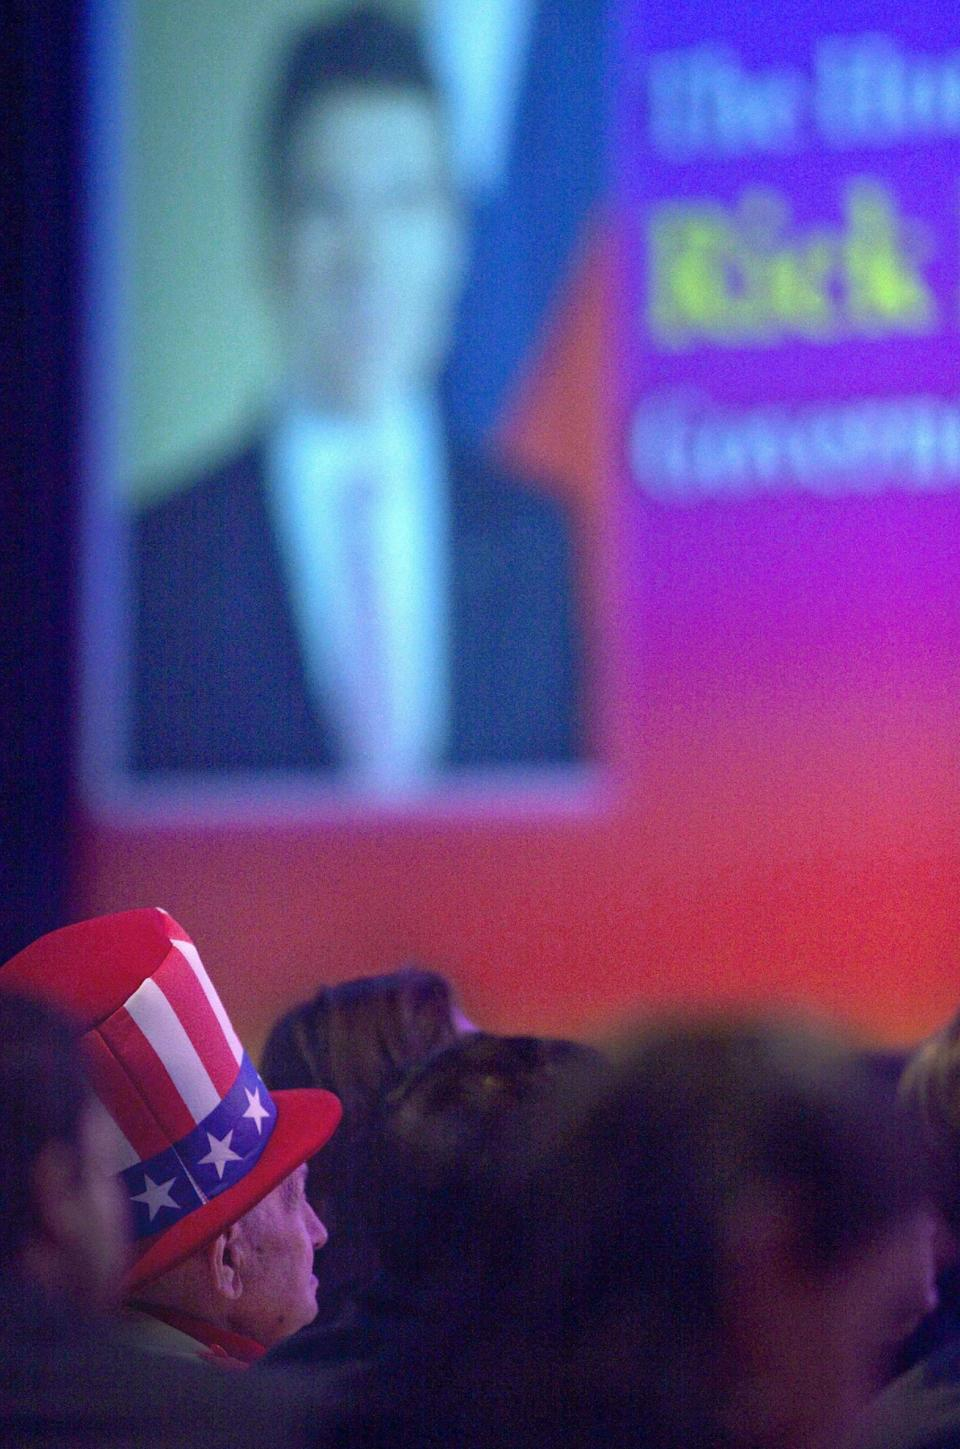 Longtime Mitt Romney supporter Oscar Poole of East Ellijay, Ga., looks on as Republican presidential candidate, Texas Gov. Rick Perry delivers a speech at the Georgia Legislative Briefing, Friday, Sept. 30, 2011, in Atlanta. (AP Photo/David Goldman)